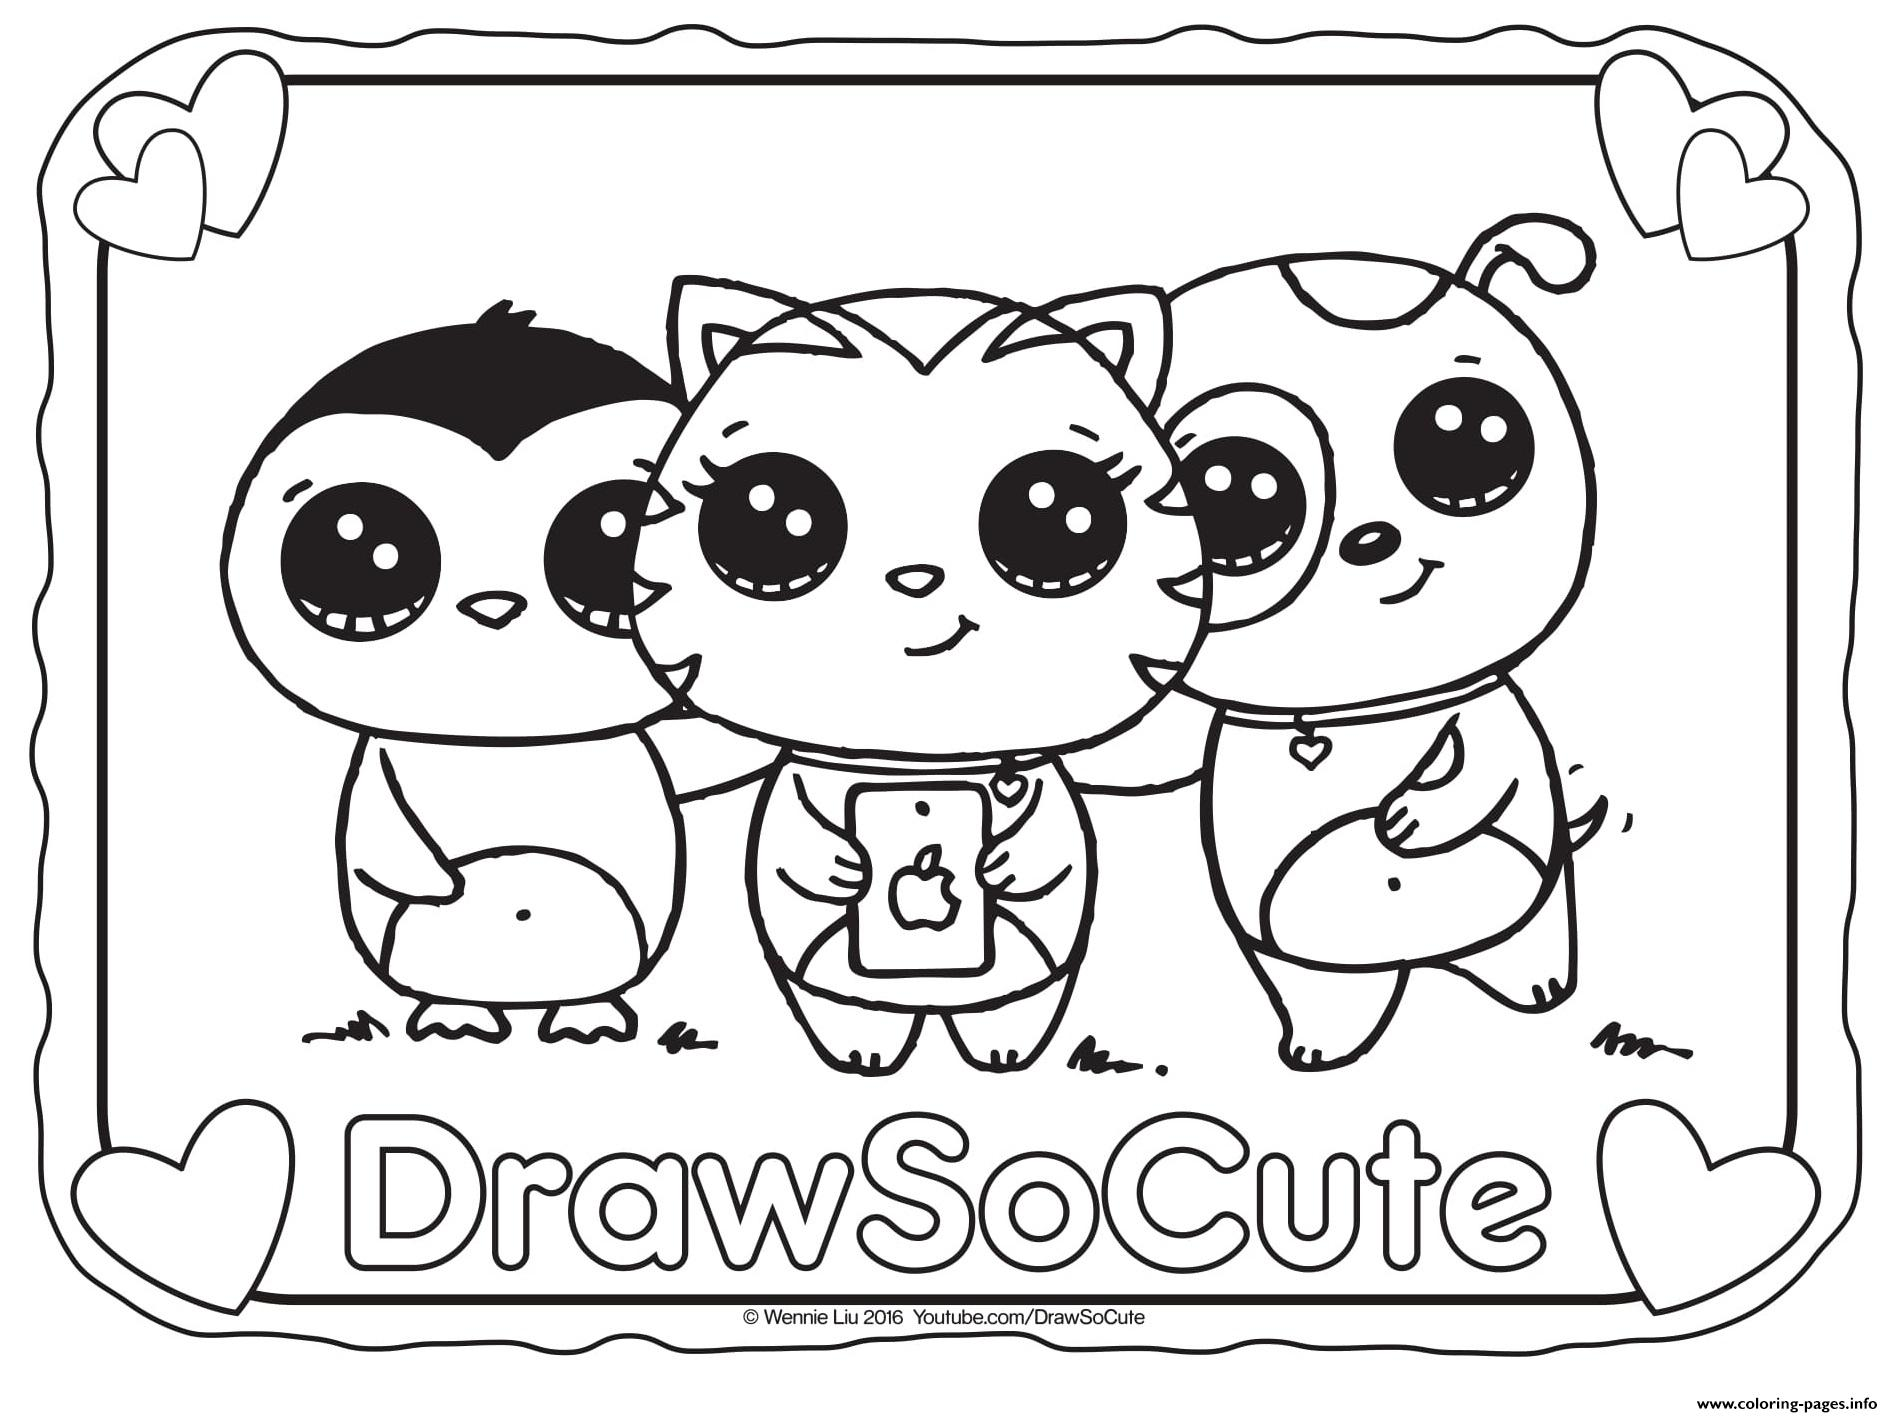 Selfie Draw So Cute coloring pages